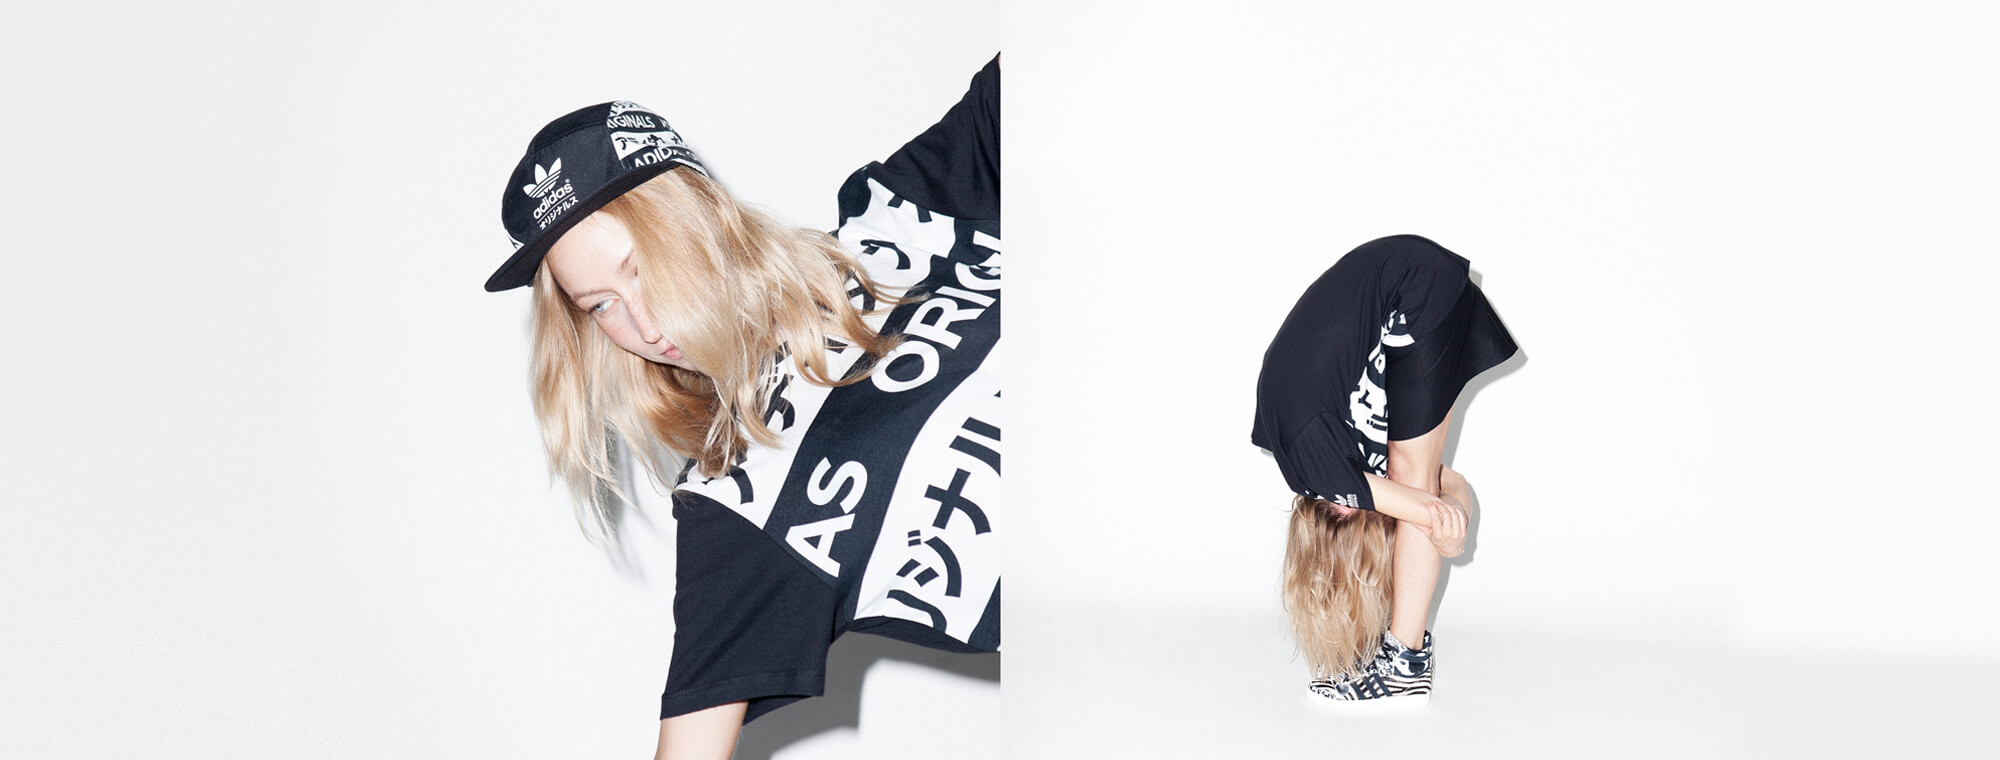 Adidas-Originals-Typo-Capsule-Header